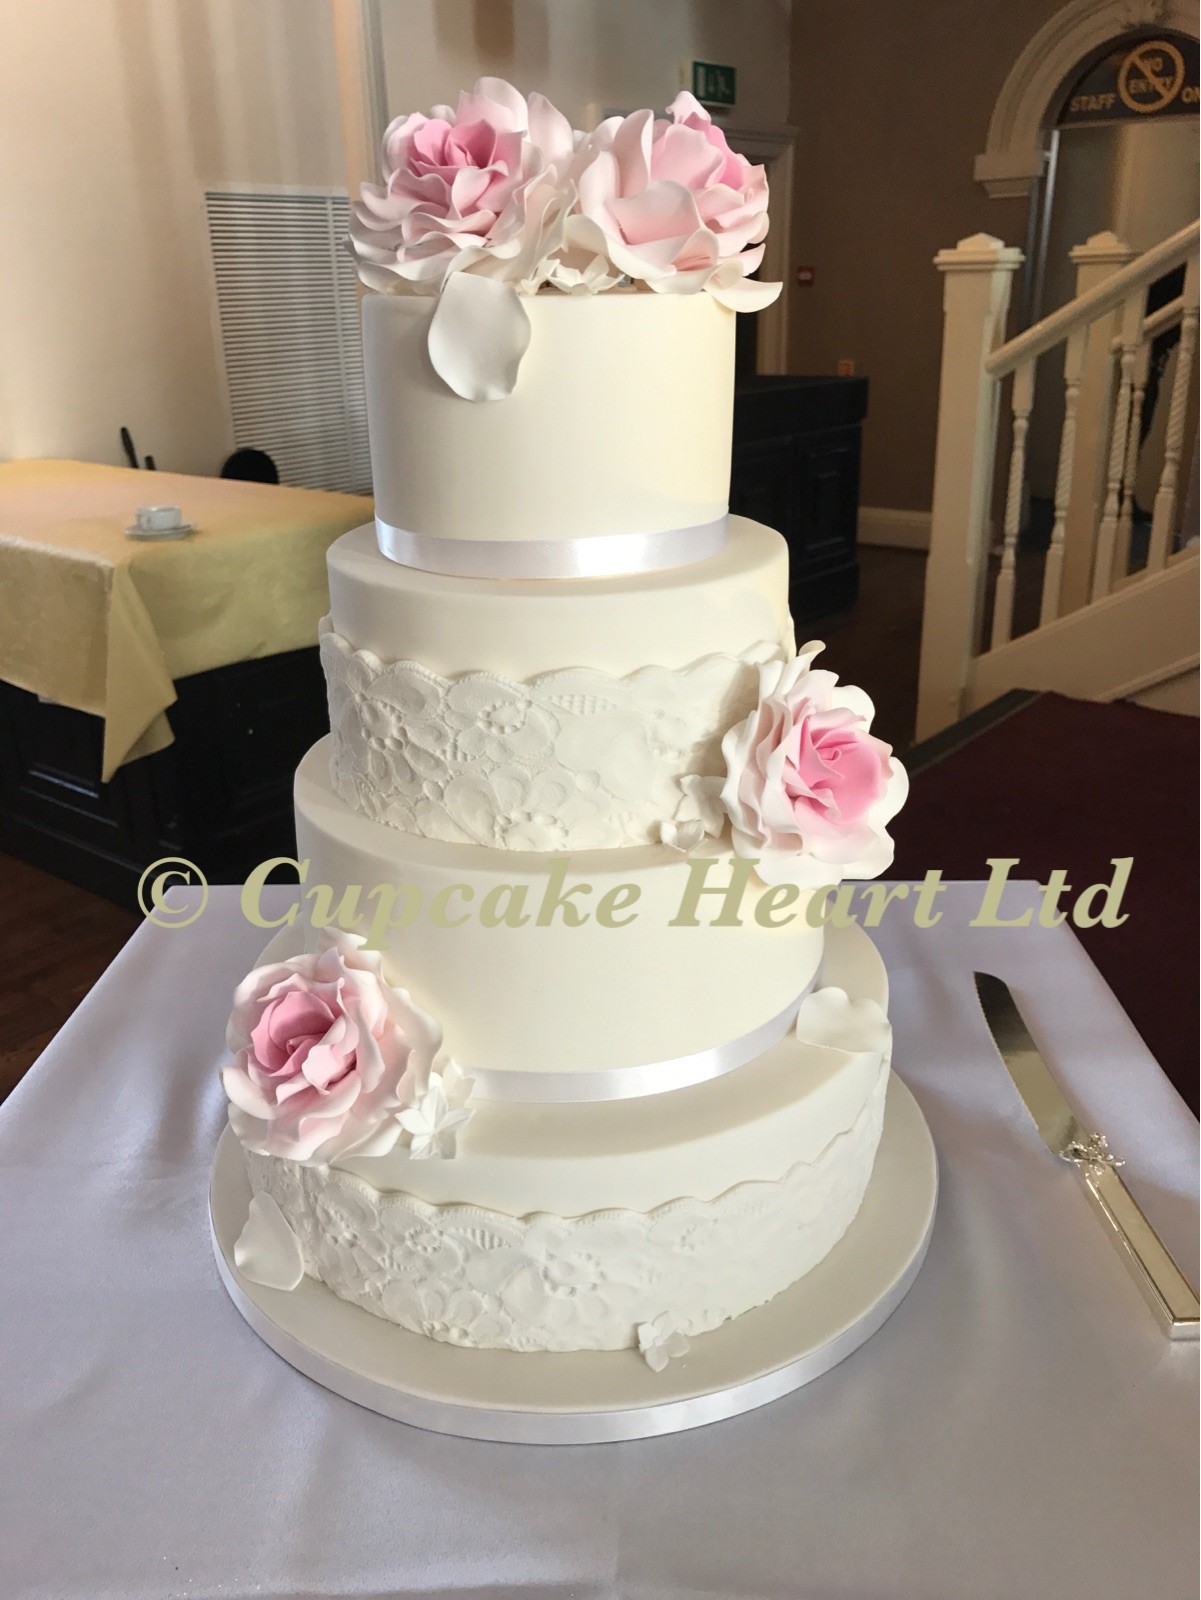 Trad wedding cake.jpg